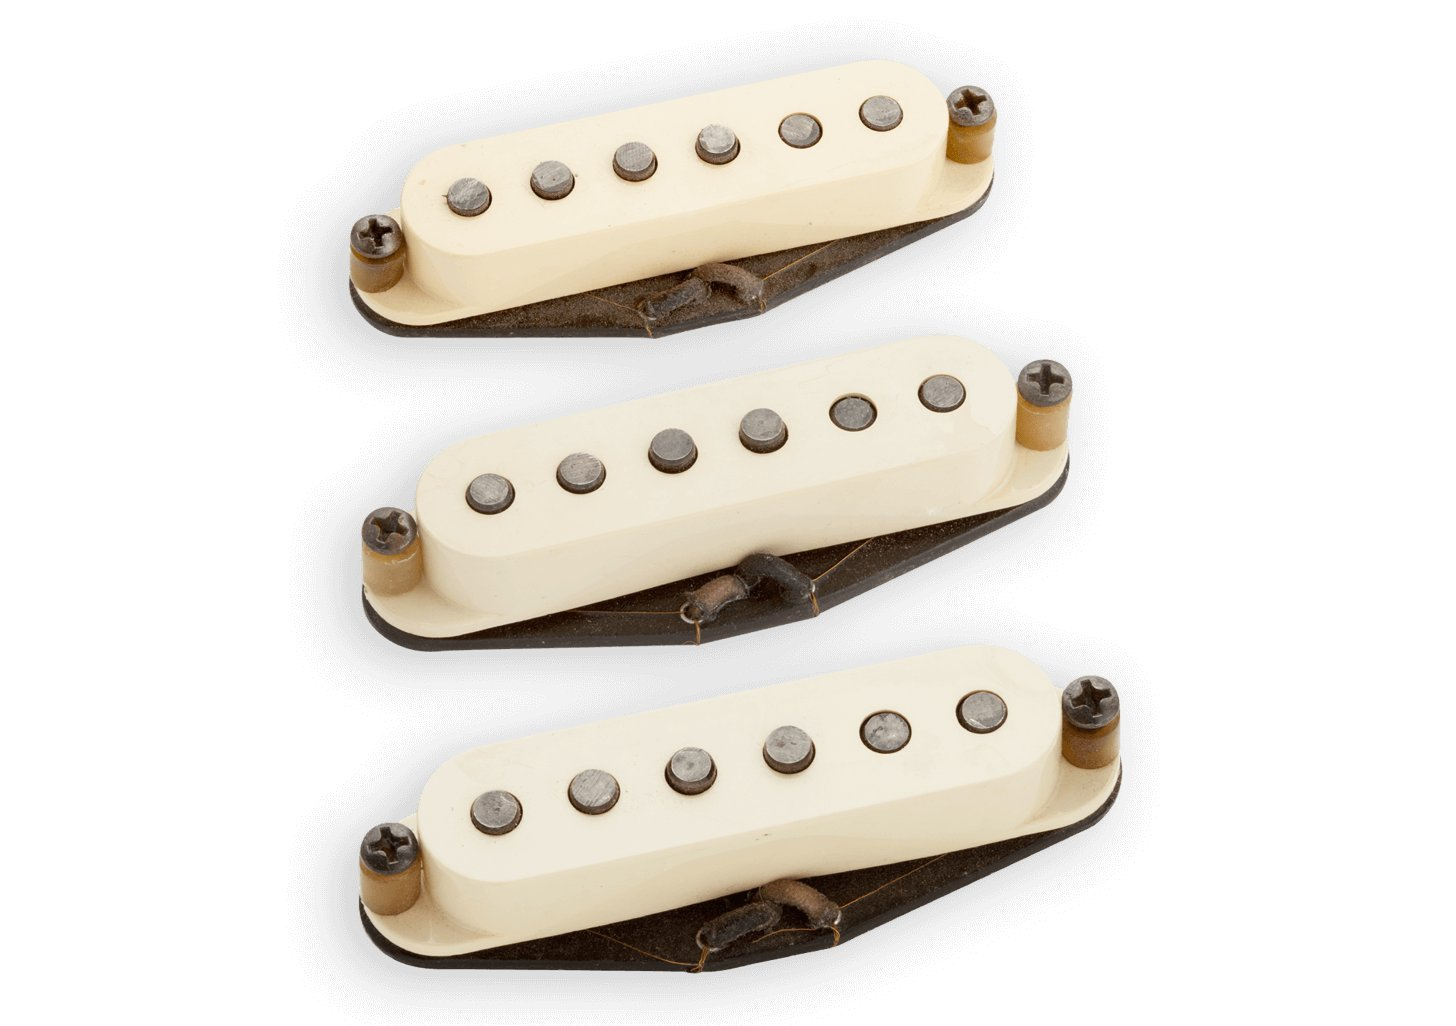 Seymour Duncan antigüedad Texas caliente Strat Single Coil Pickup Set años blanco 11028 - 01 W/Bonus beverage-opener llavero 800315040605: Amazon.es: ...